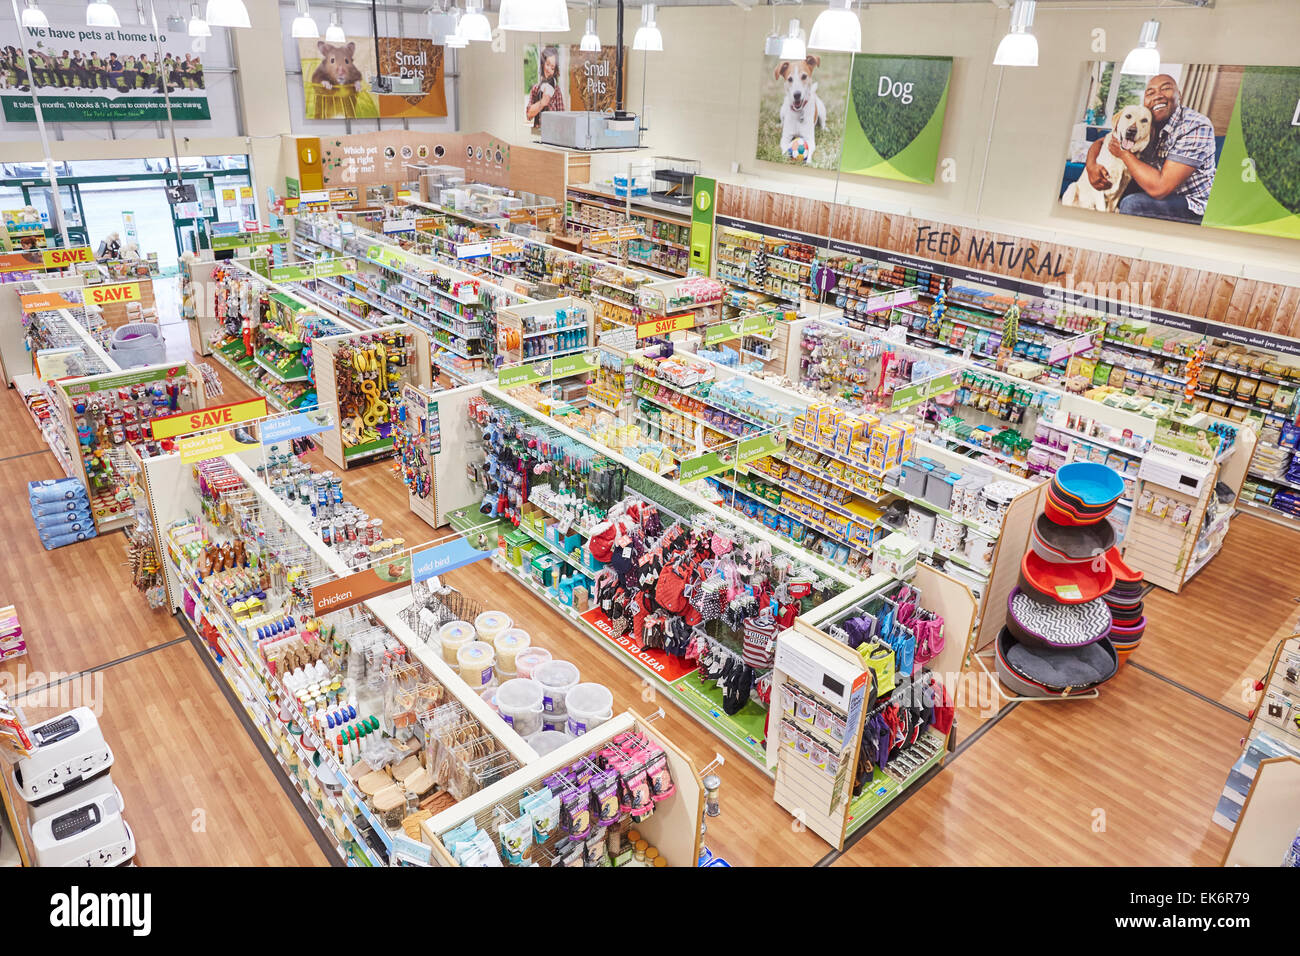 pets at home interior store space stock photo royalty